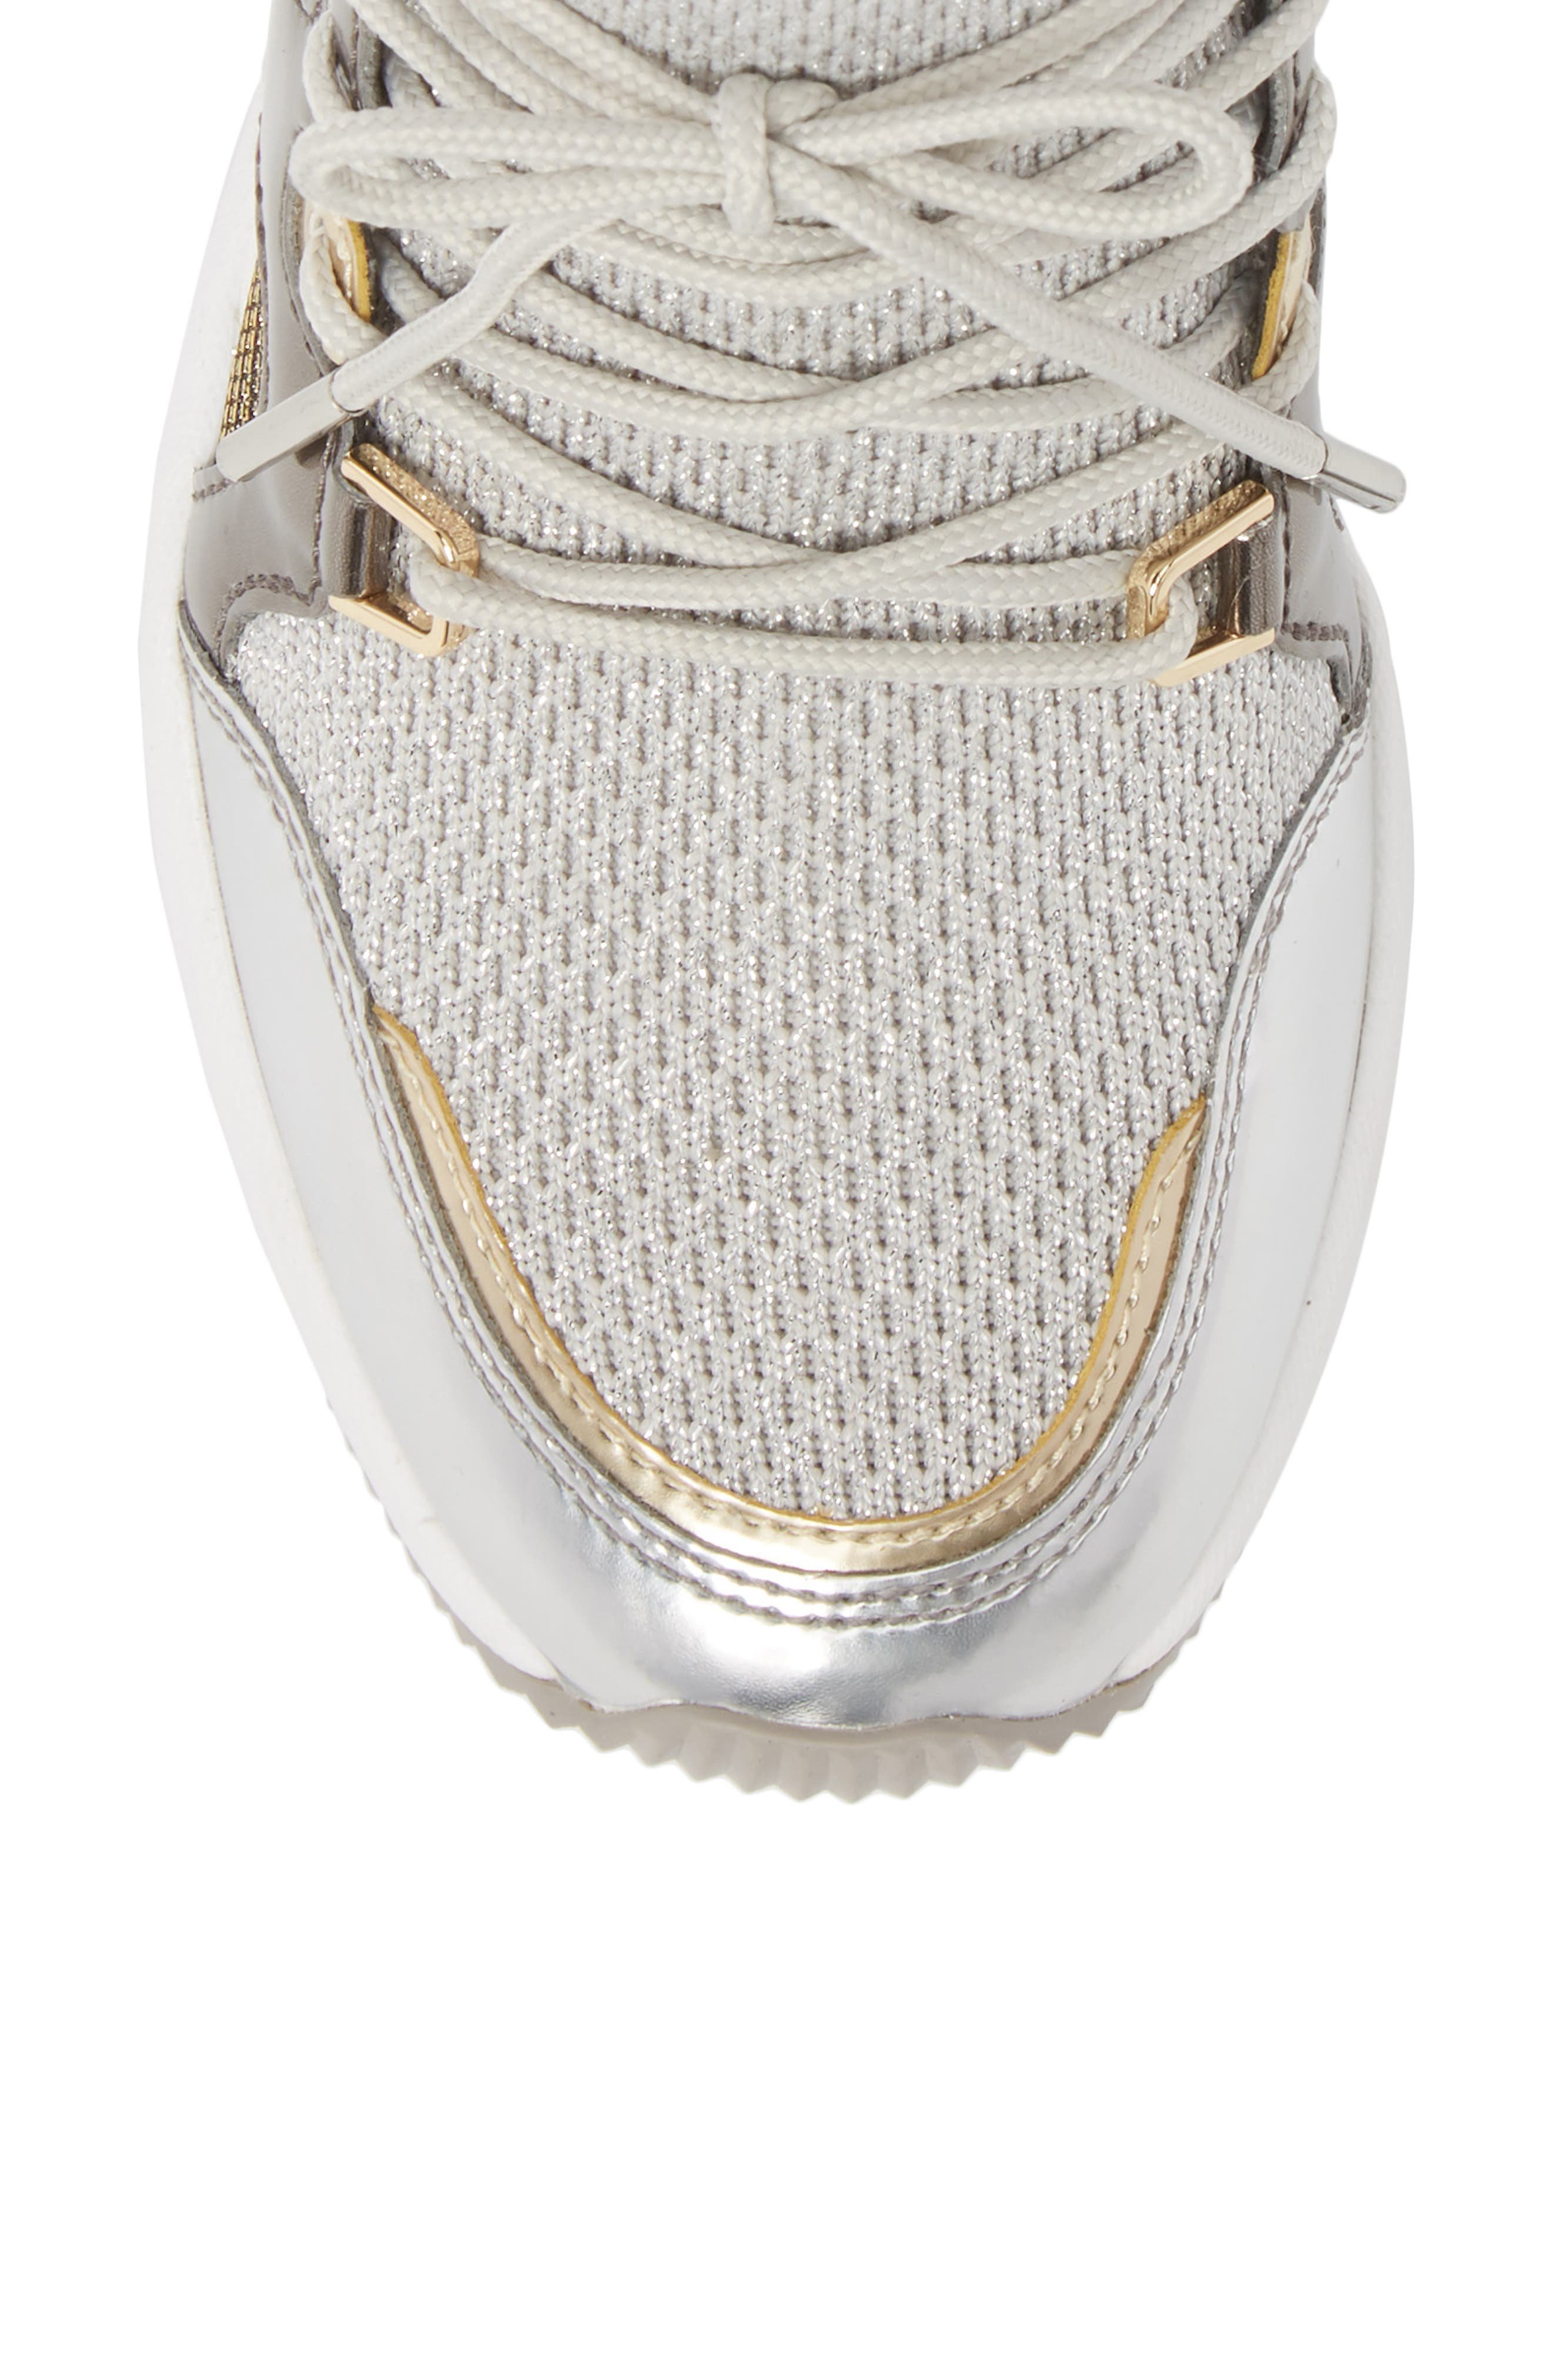 Hilda Wedge Sneaker,                             Alternate thumbnail 5, color,                             Silver Knit Fabric